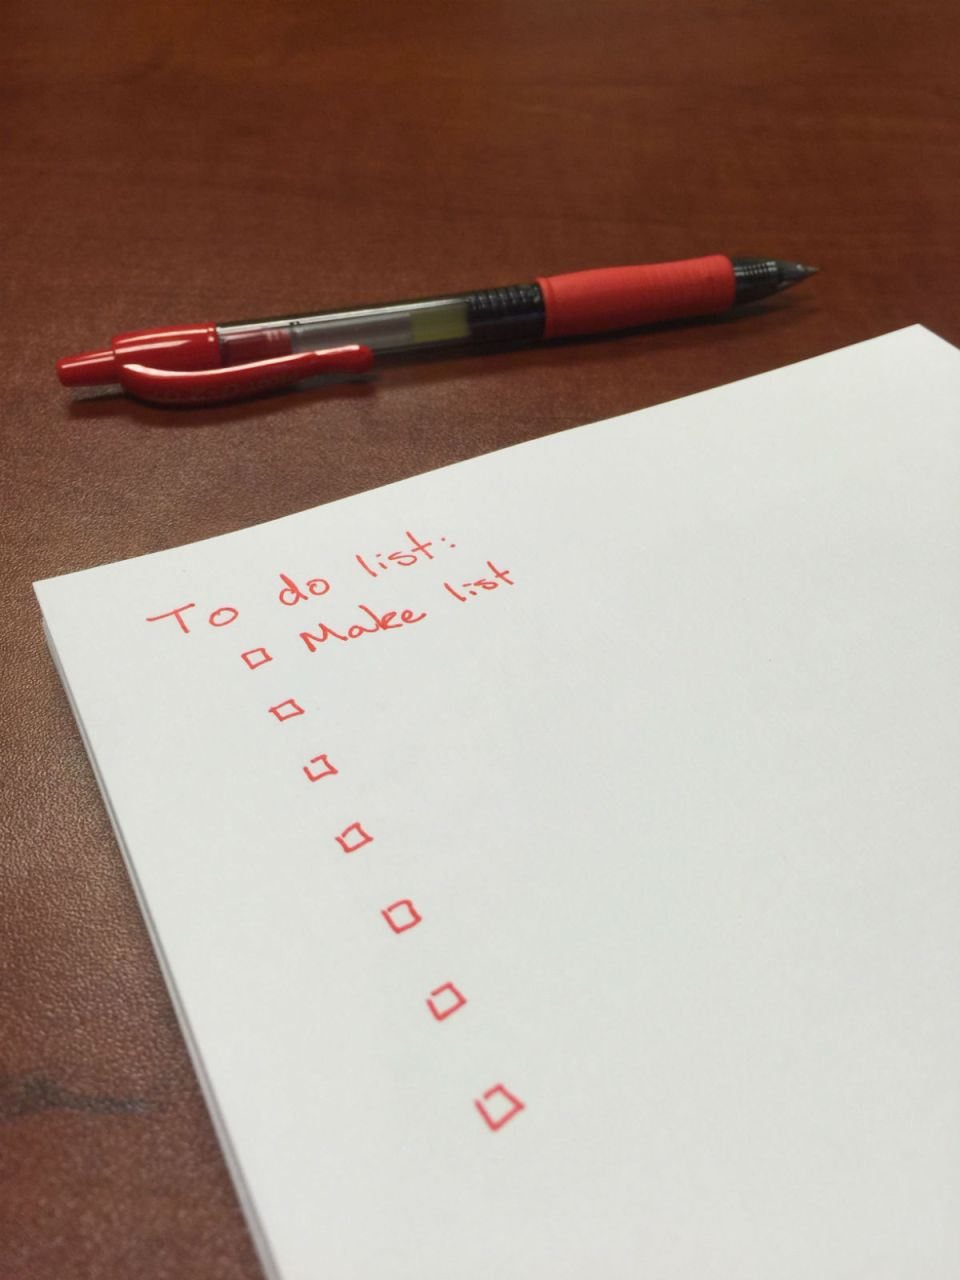 An empty to do list on a desk (Adam Diaz/wiki commons)